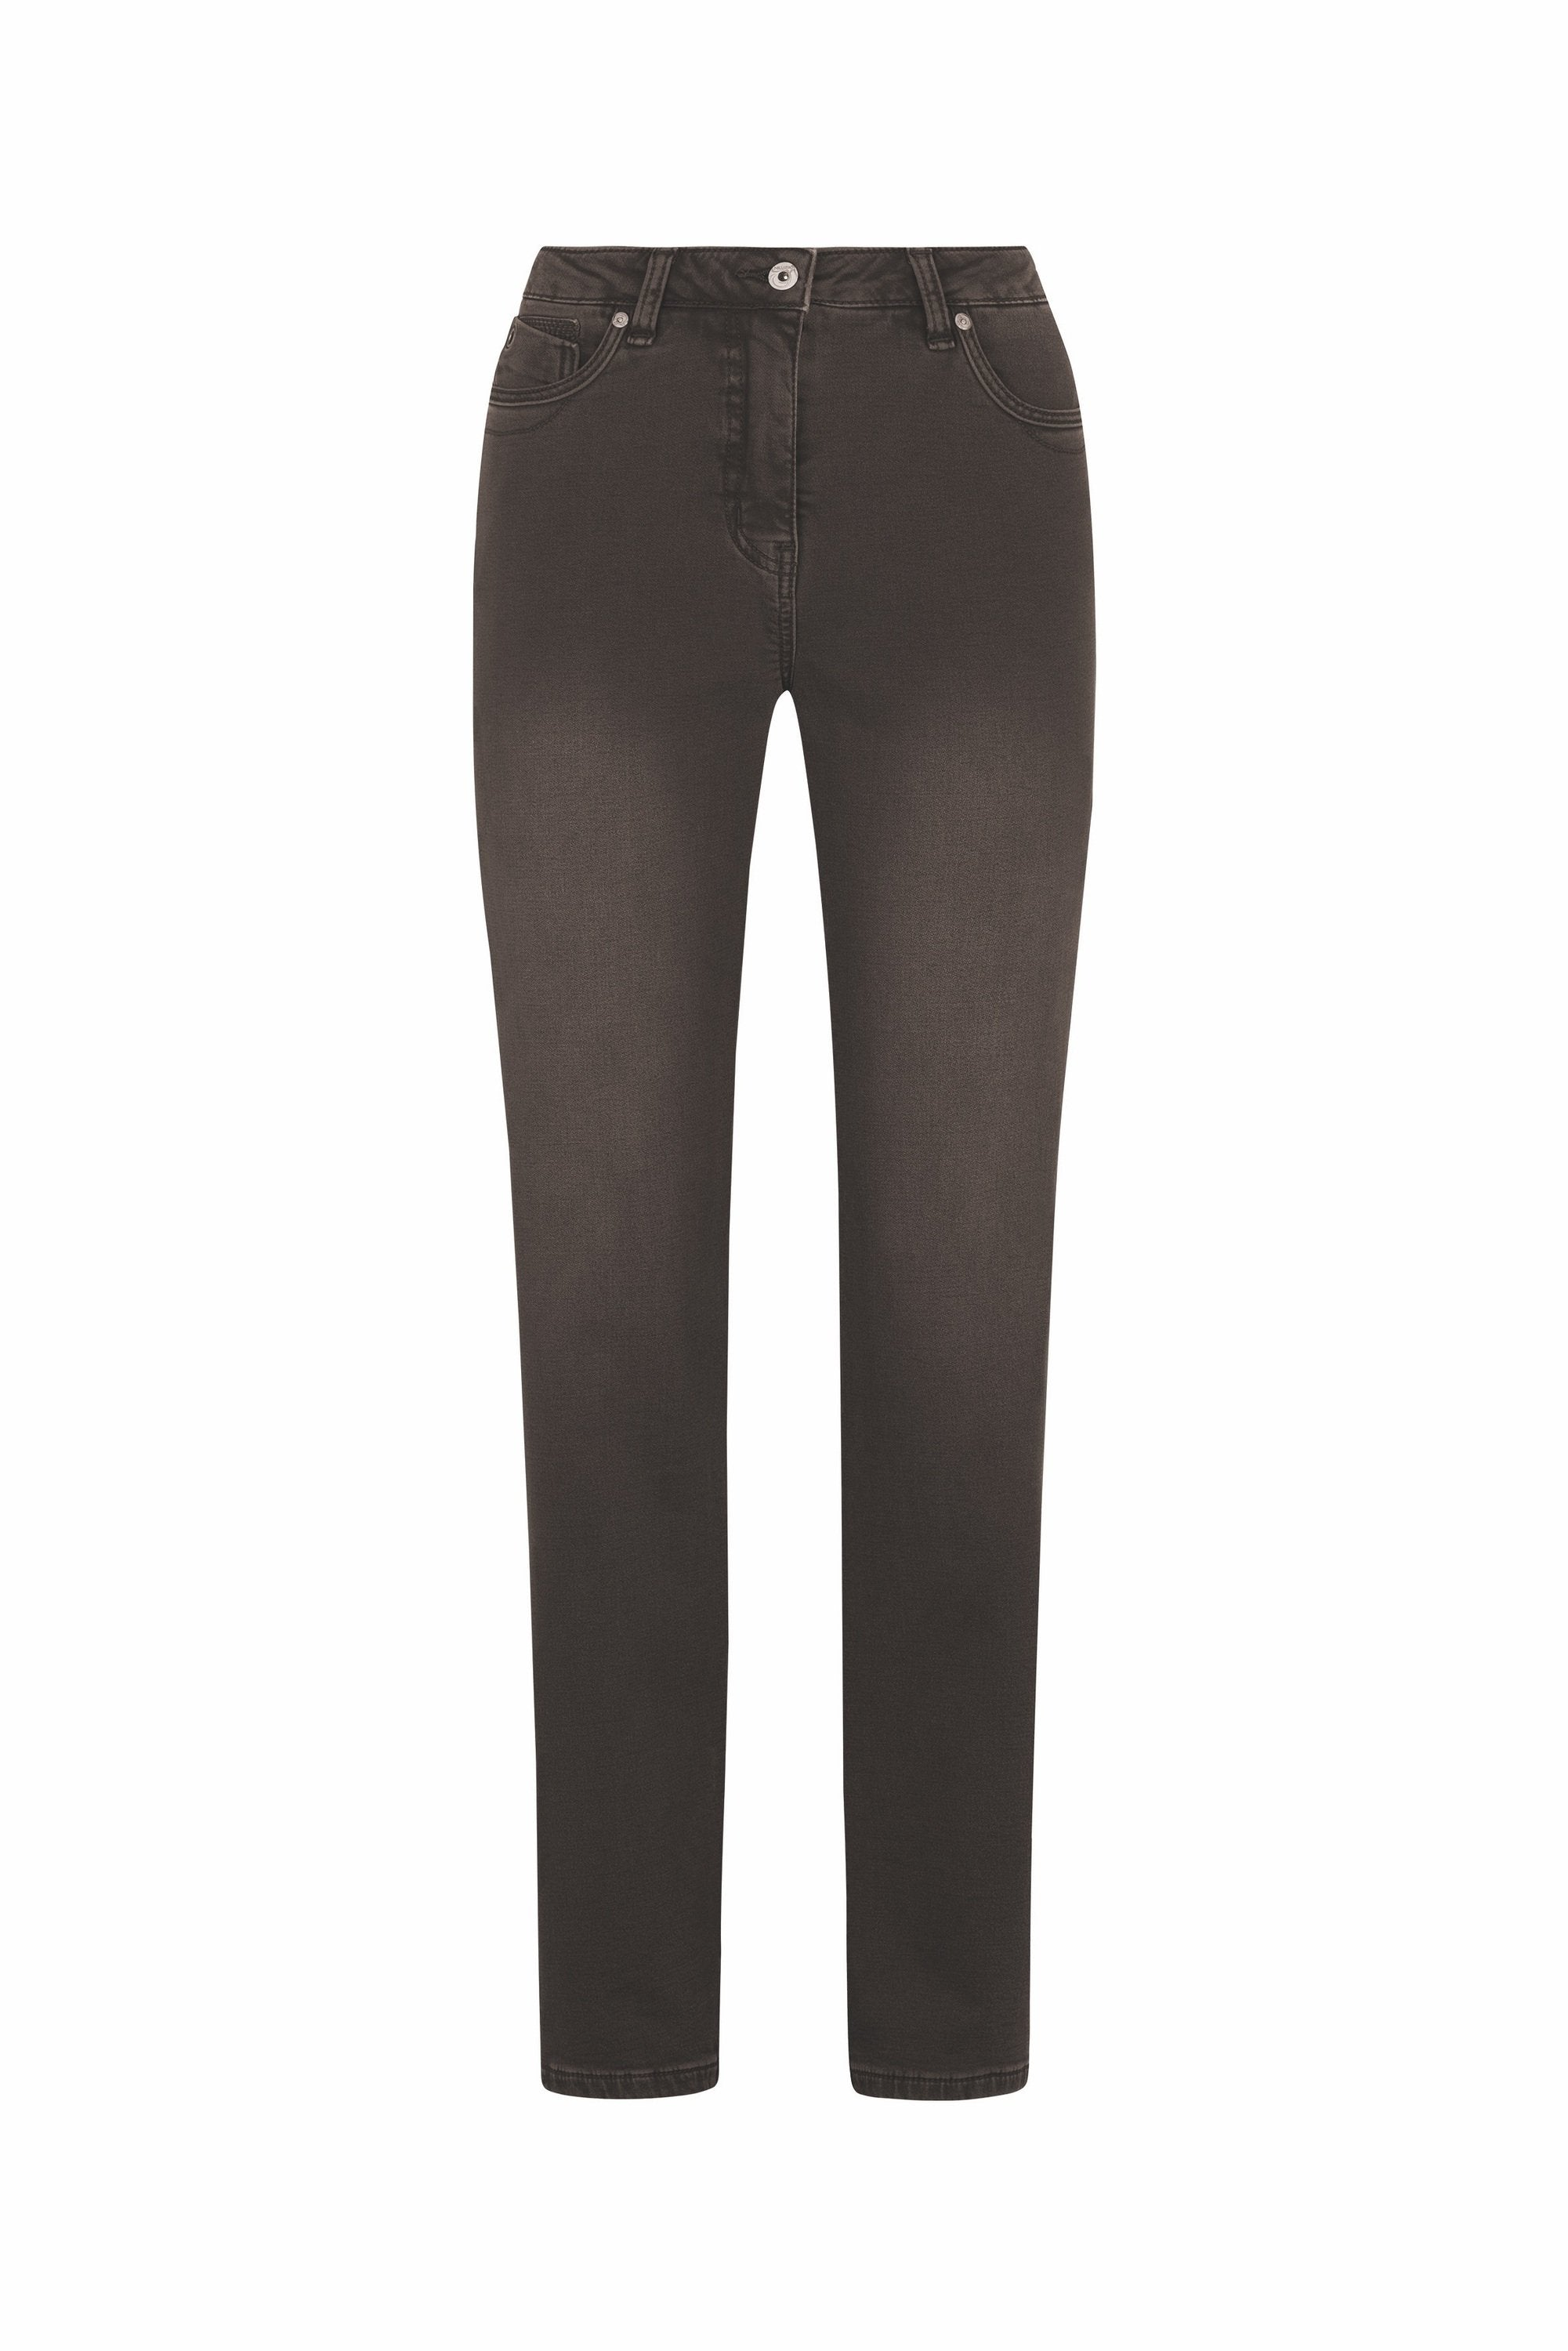 Damen Jeans Rita supersoft